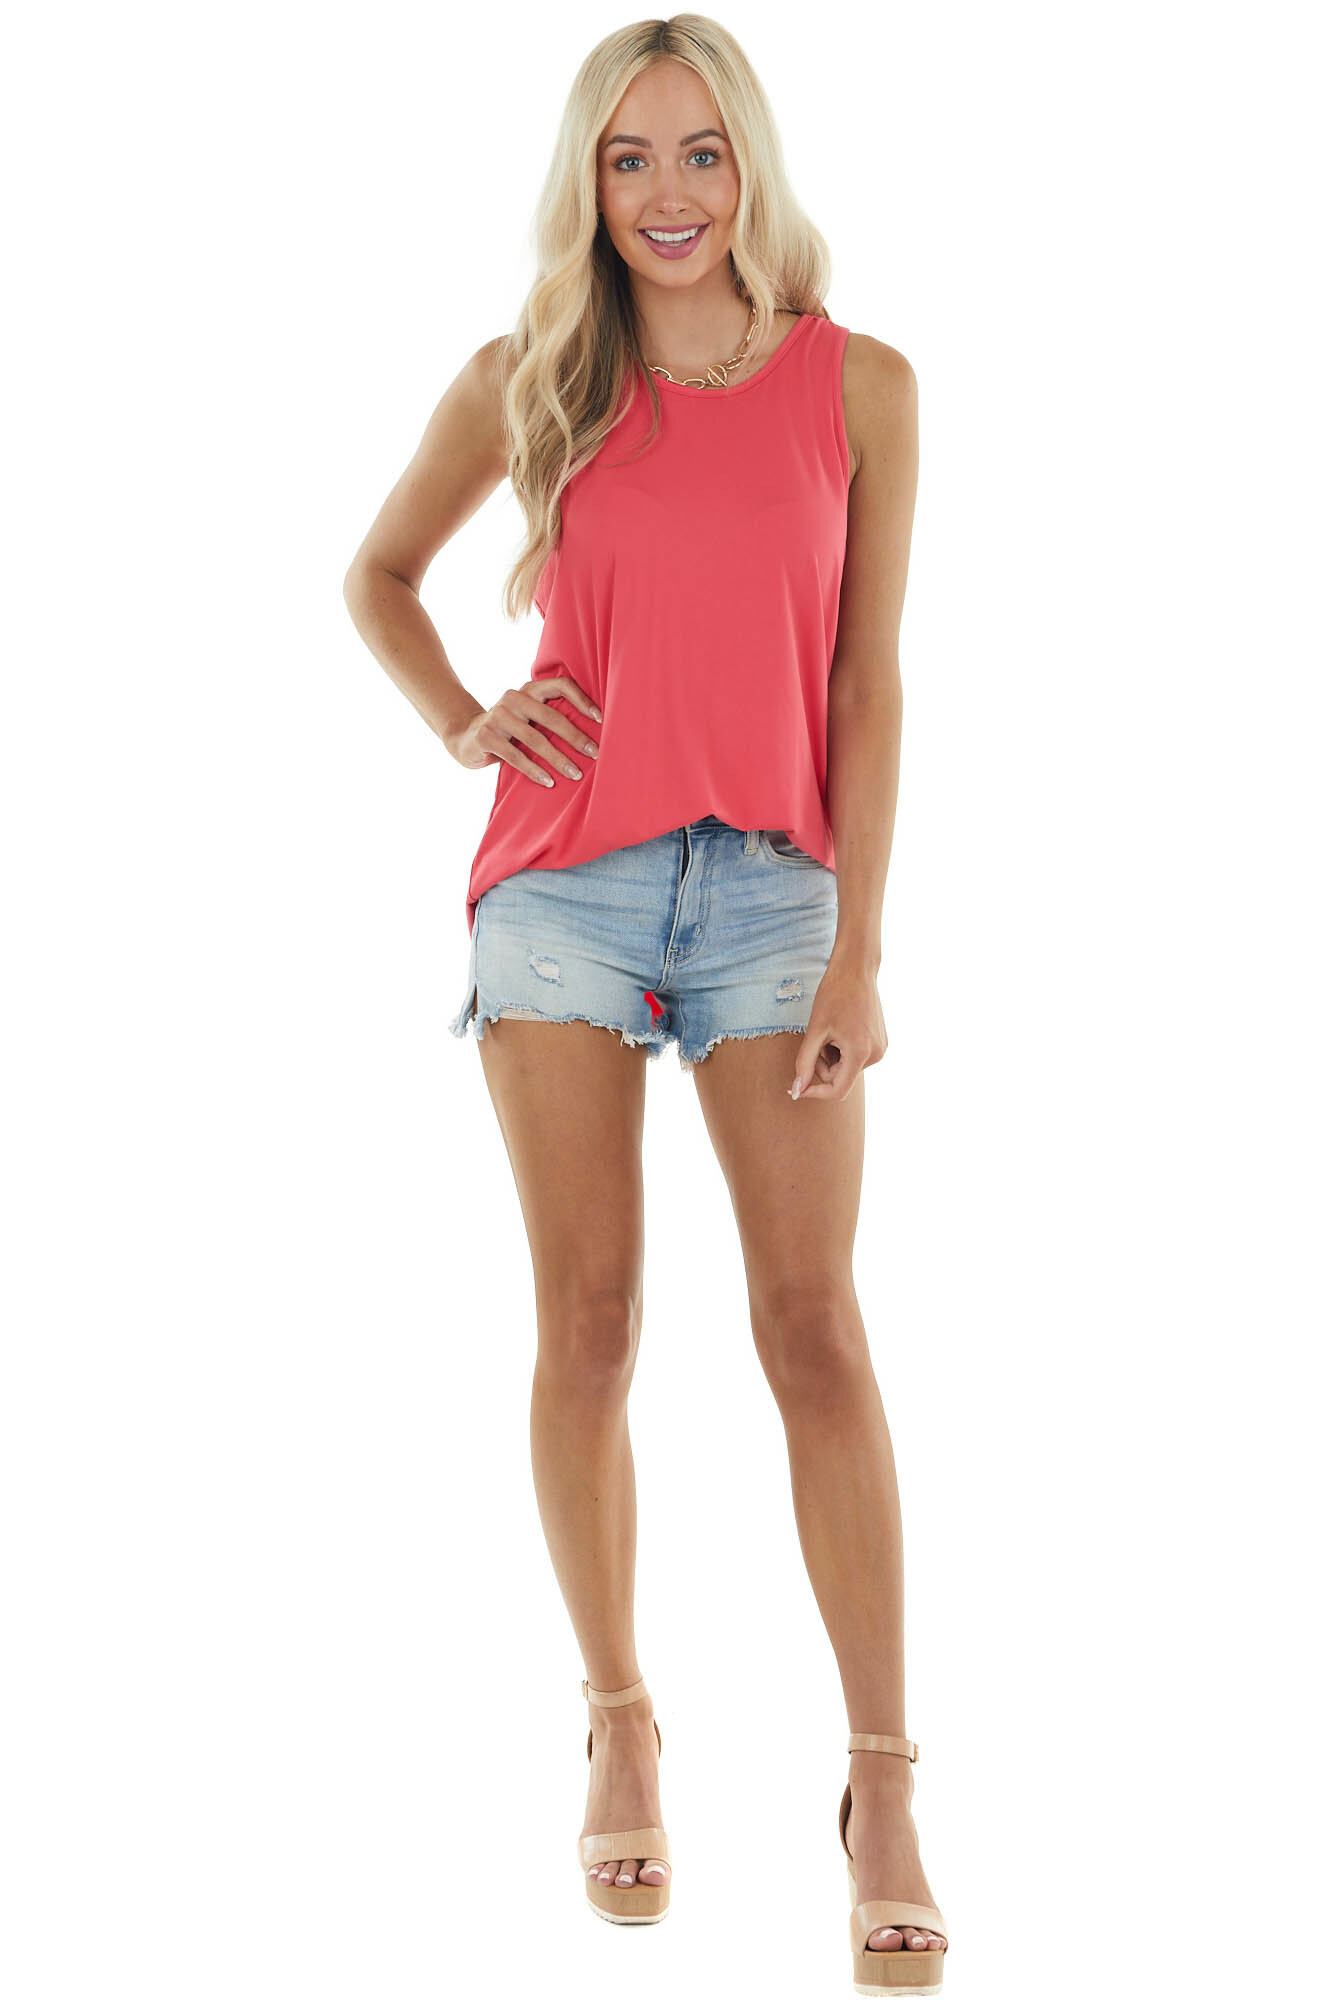 Raspberry Twisted Racerback Stretchy Knit Tank Top